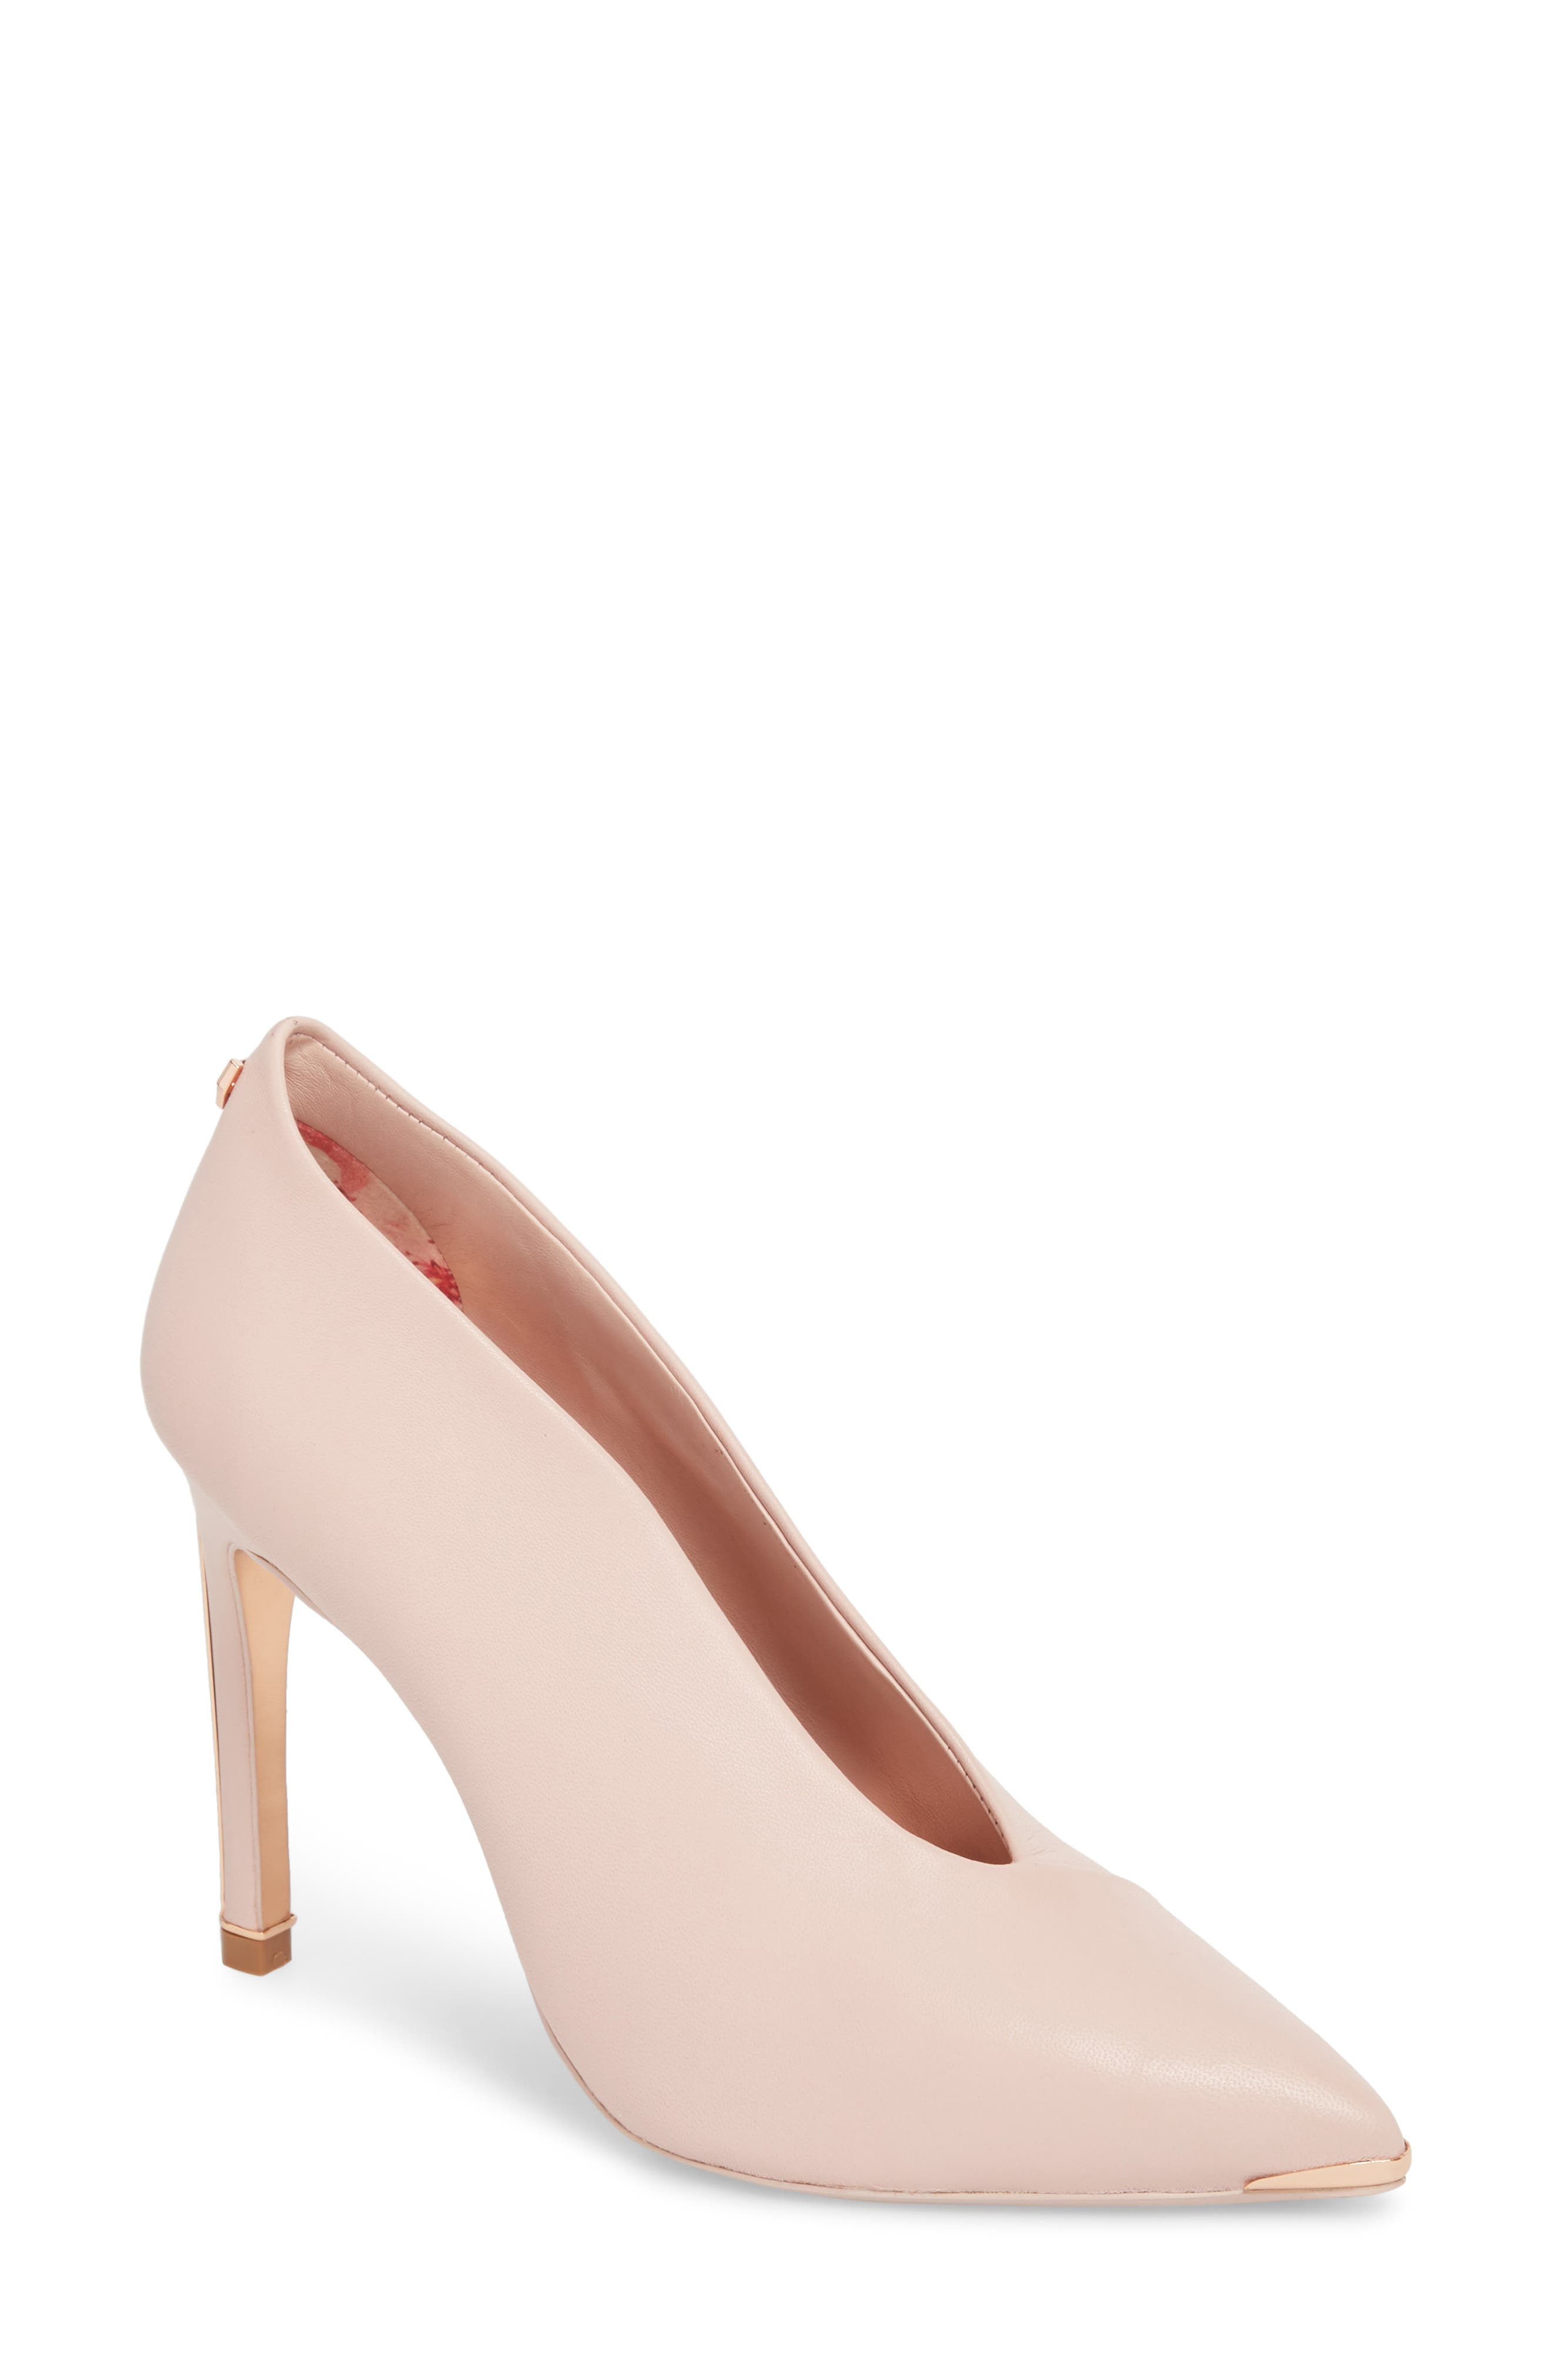 Bexz Pump,                         Main,                         color, Blossom Pink Leather